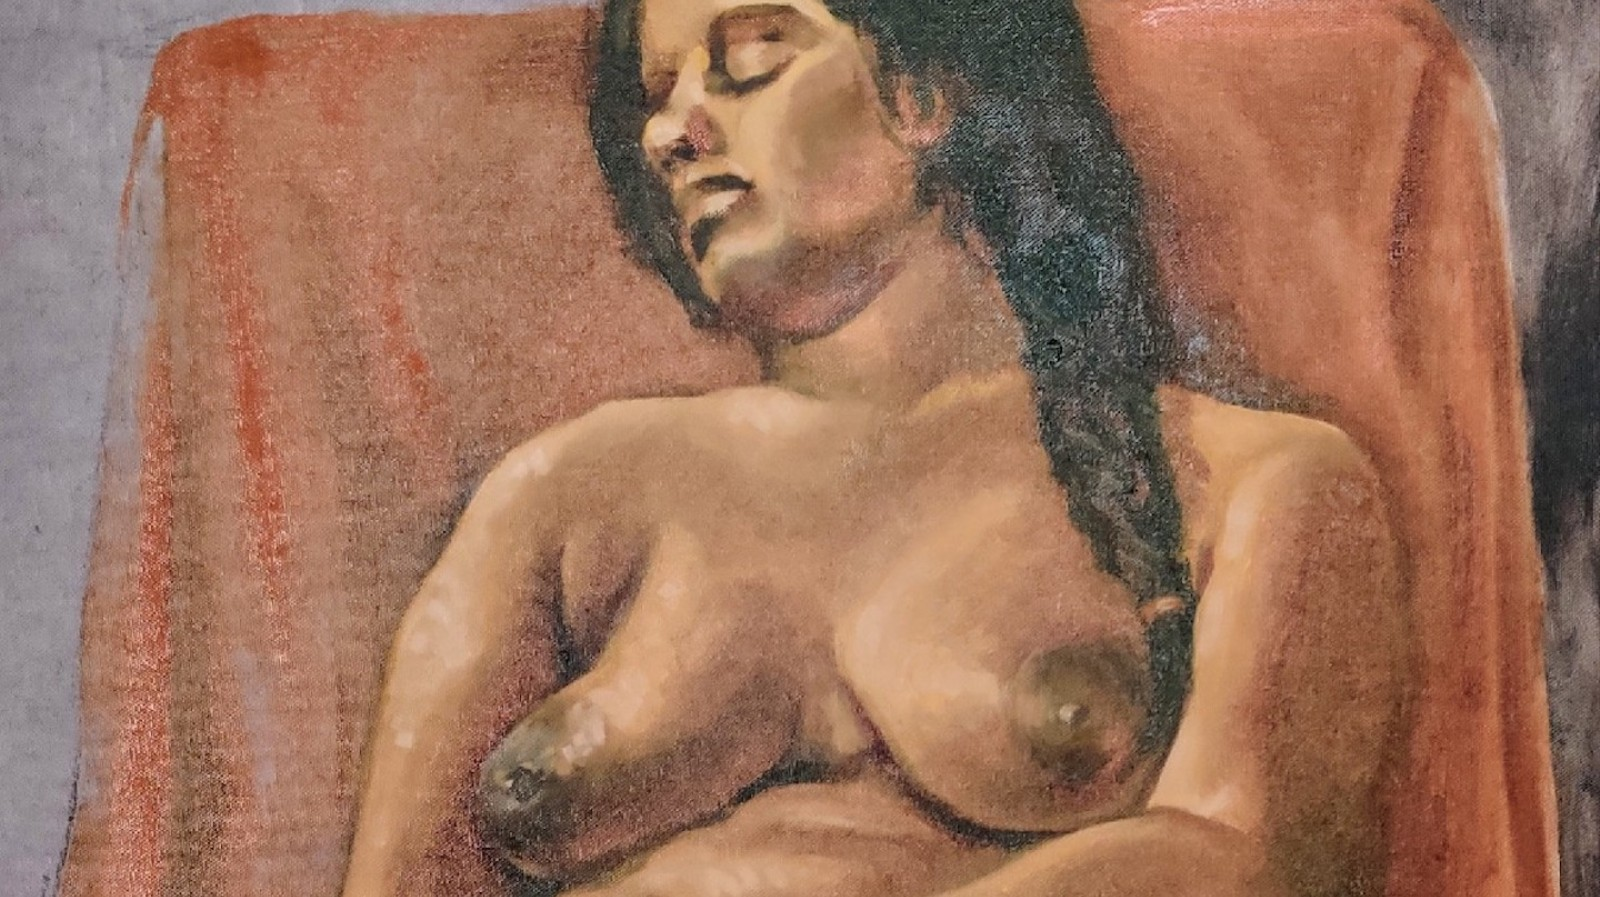 10 Questions You Always Wanted To Ask a Nude Art Model